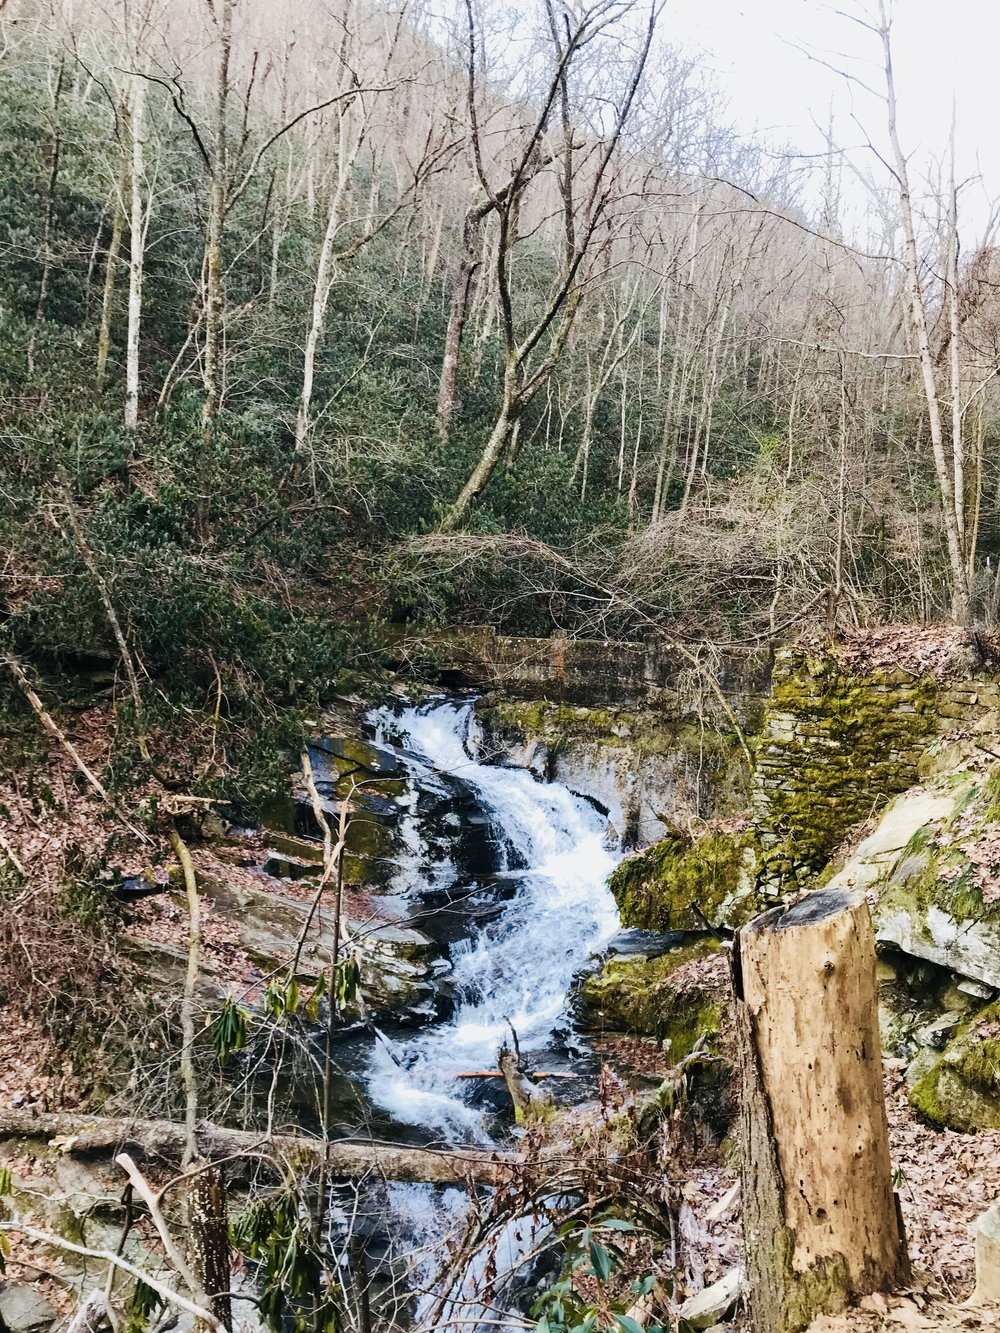 The old breeched dam along the hike.